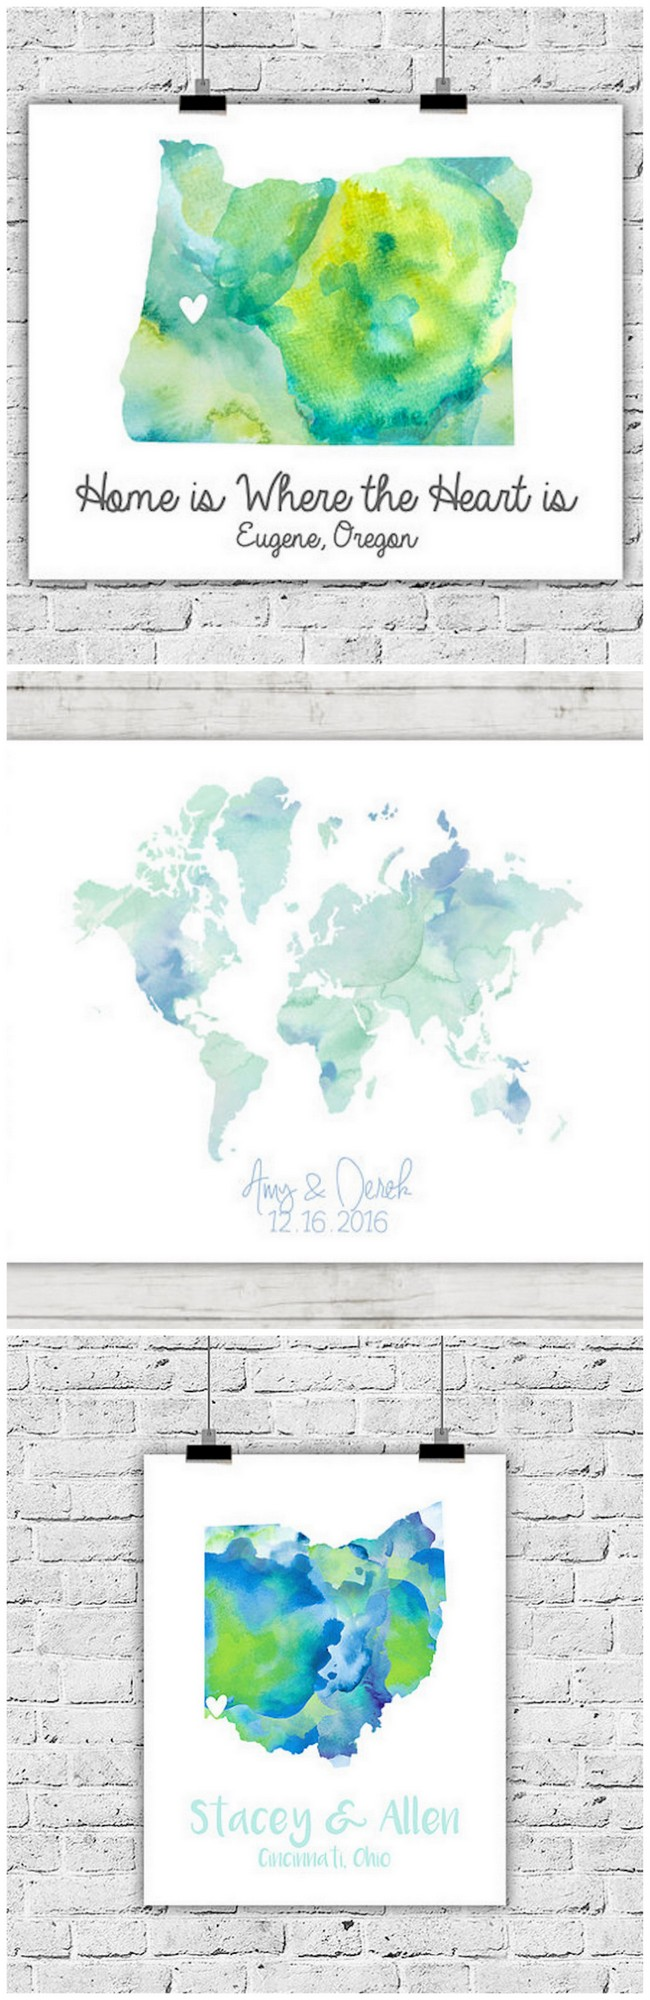 Seriously adorbs wedding map guest book ideas. Click for even more ideas.